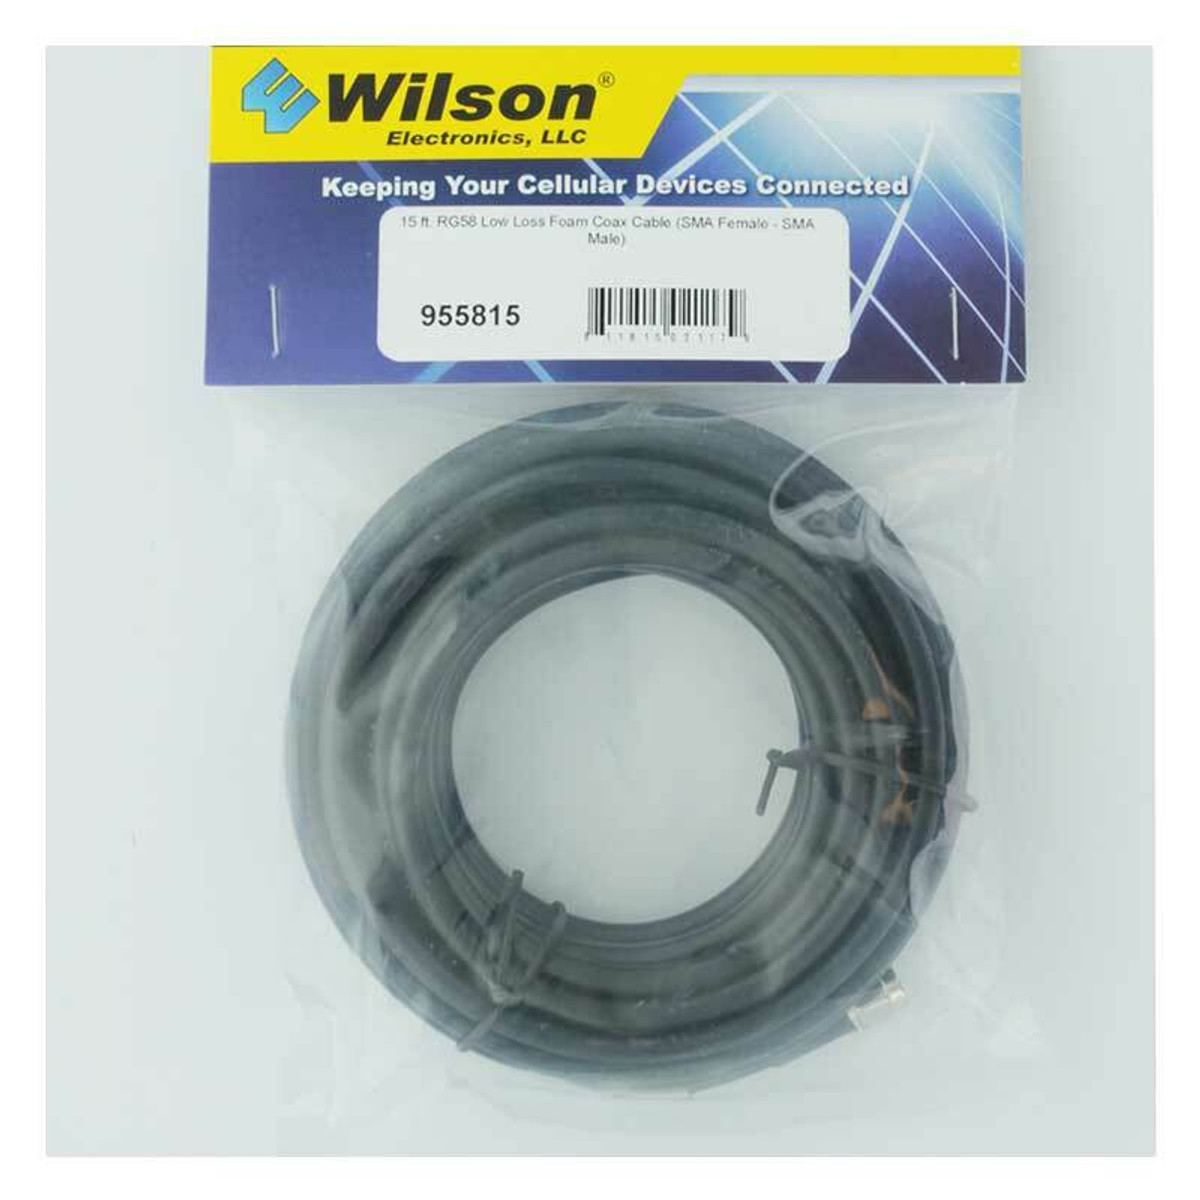 Wilson Electronics weBoost Wilson 955815 RG58 Extension SMA Female to SMA Male or 15 ft Black Cable